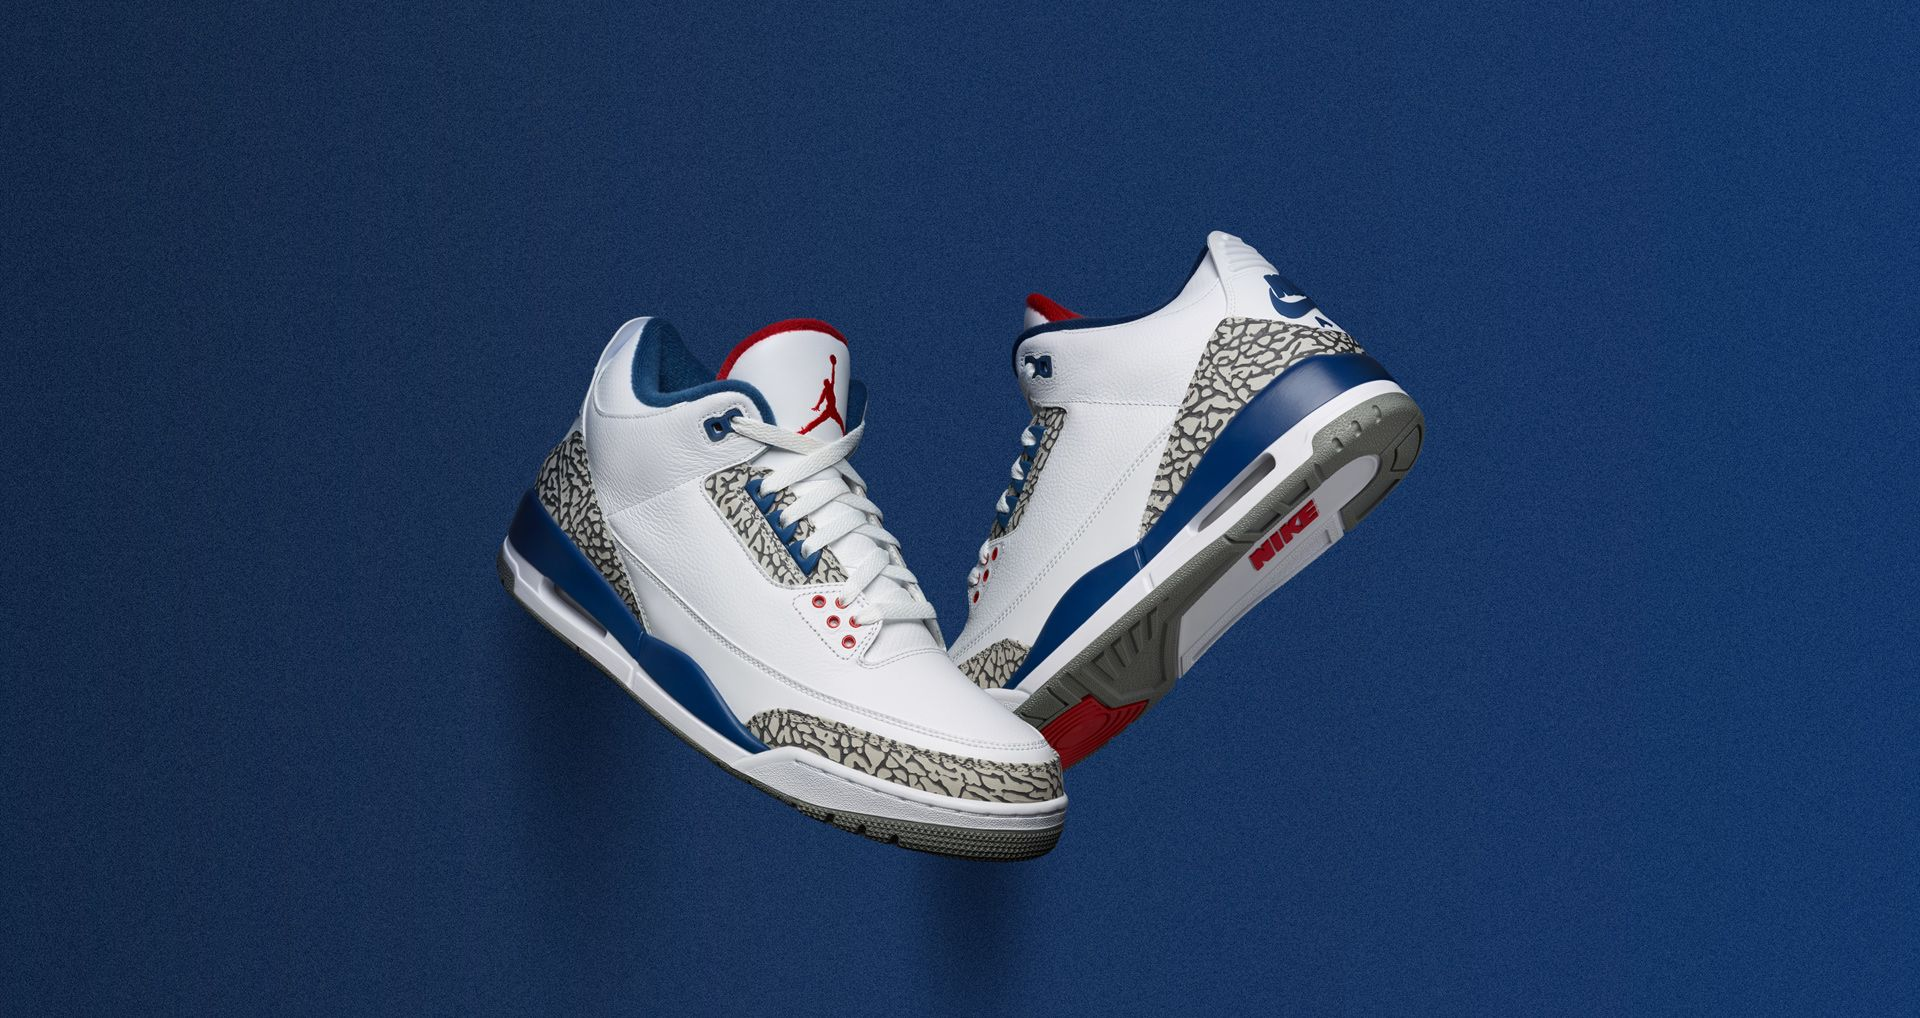 on sale b4e60 08fd4 Air Jordan 3 Retro OG 'White & Cement Grey & Blue'. Nike⁠+ SNKRS